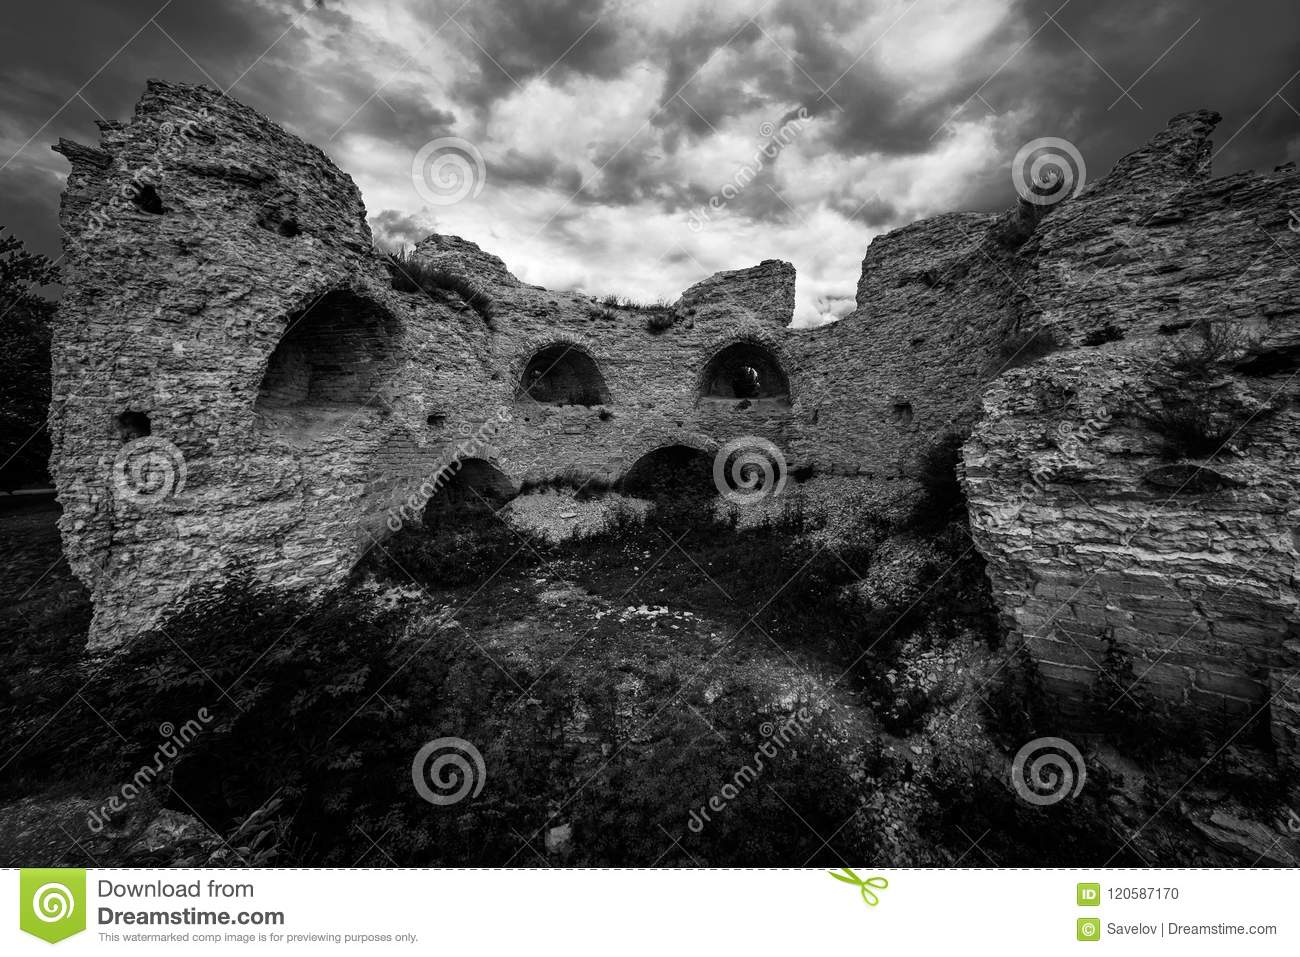 Dramatic black and white photo with ancient ruins